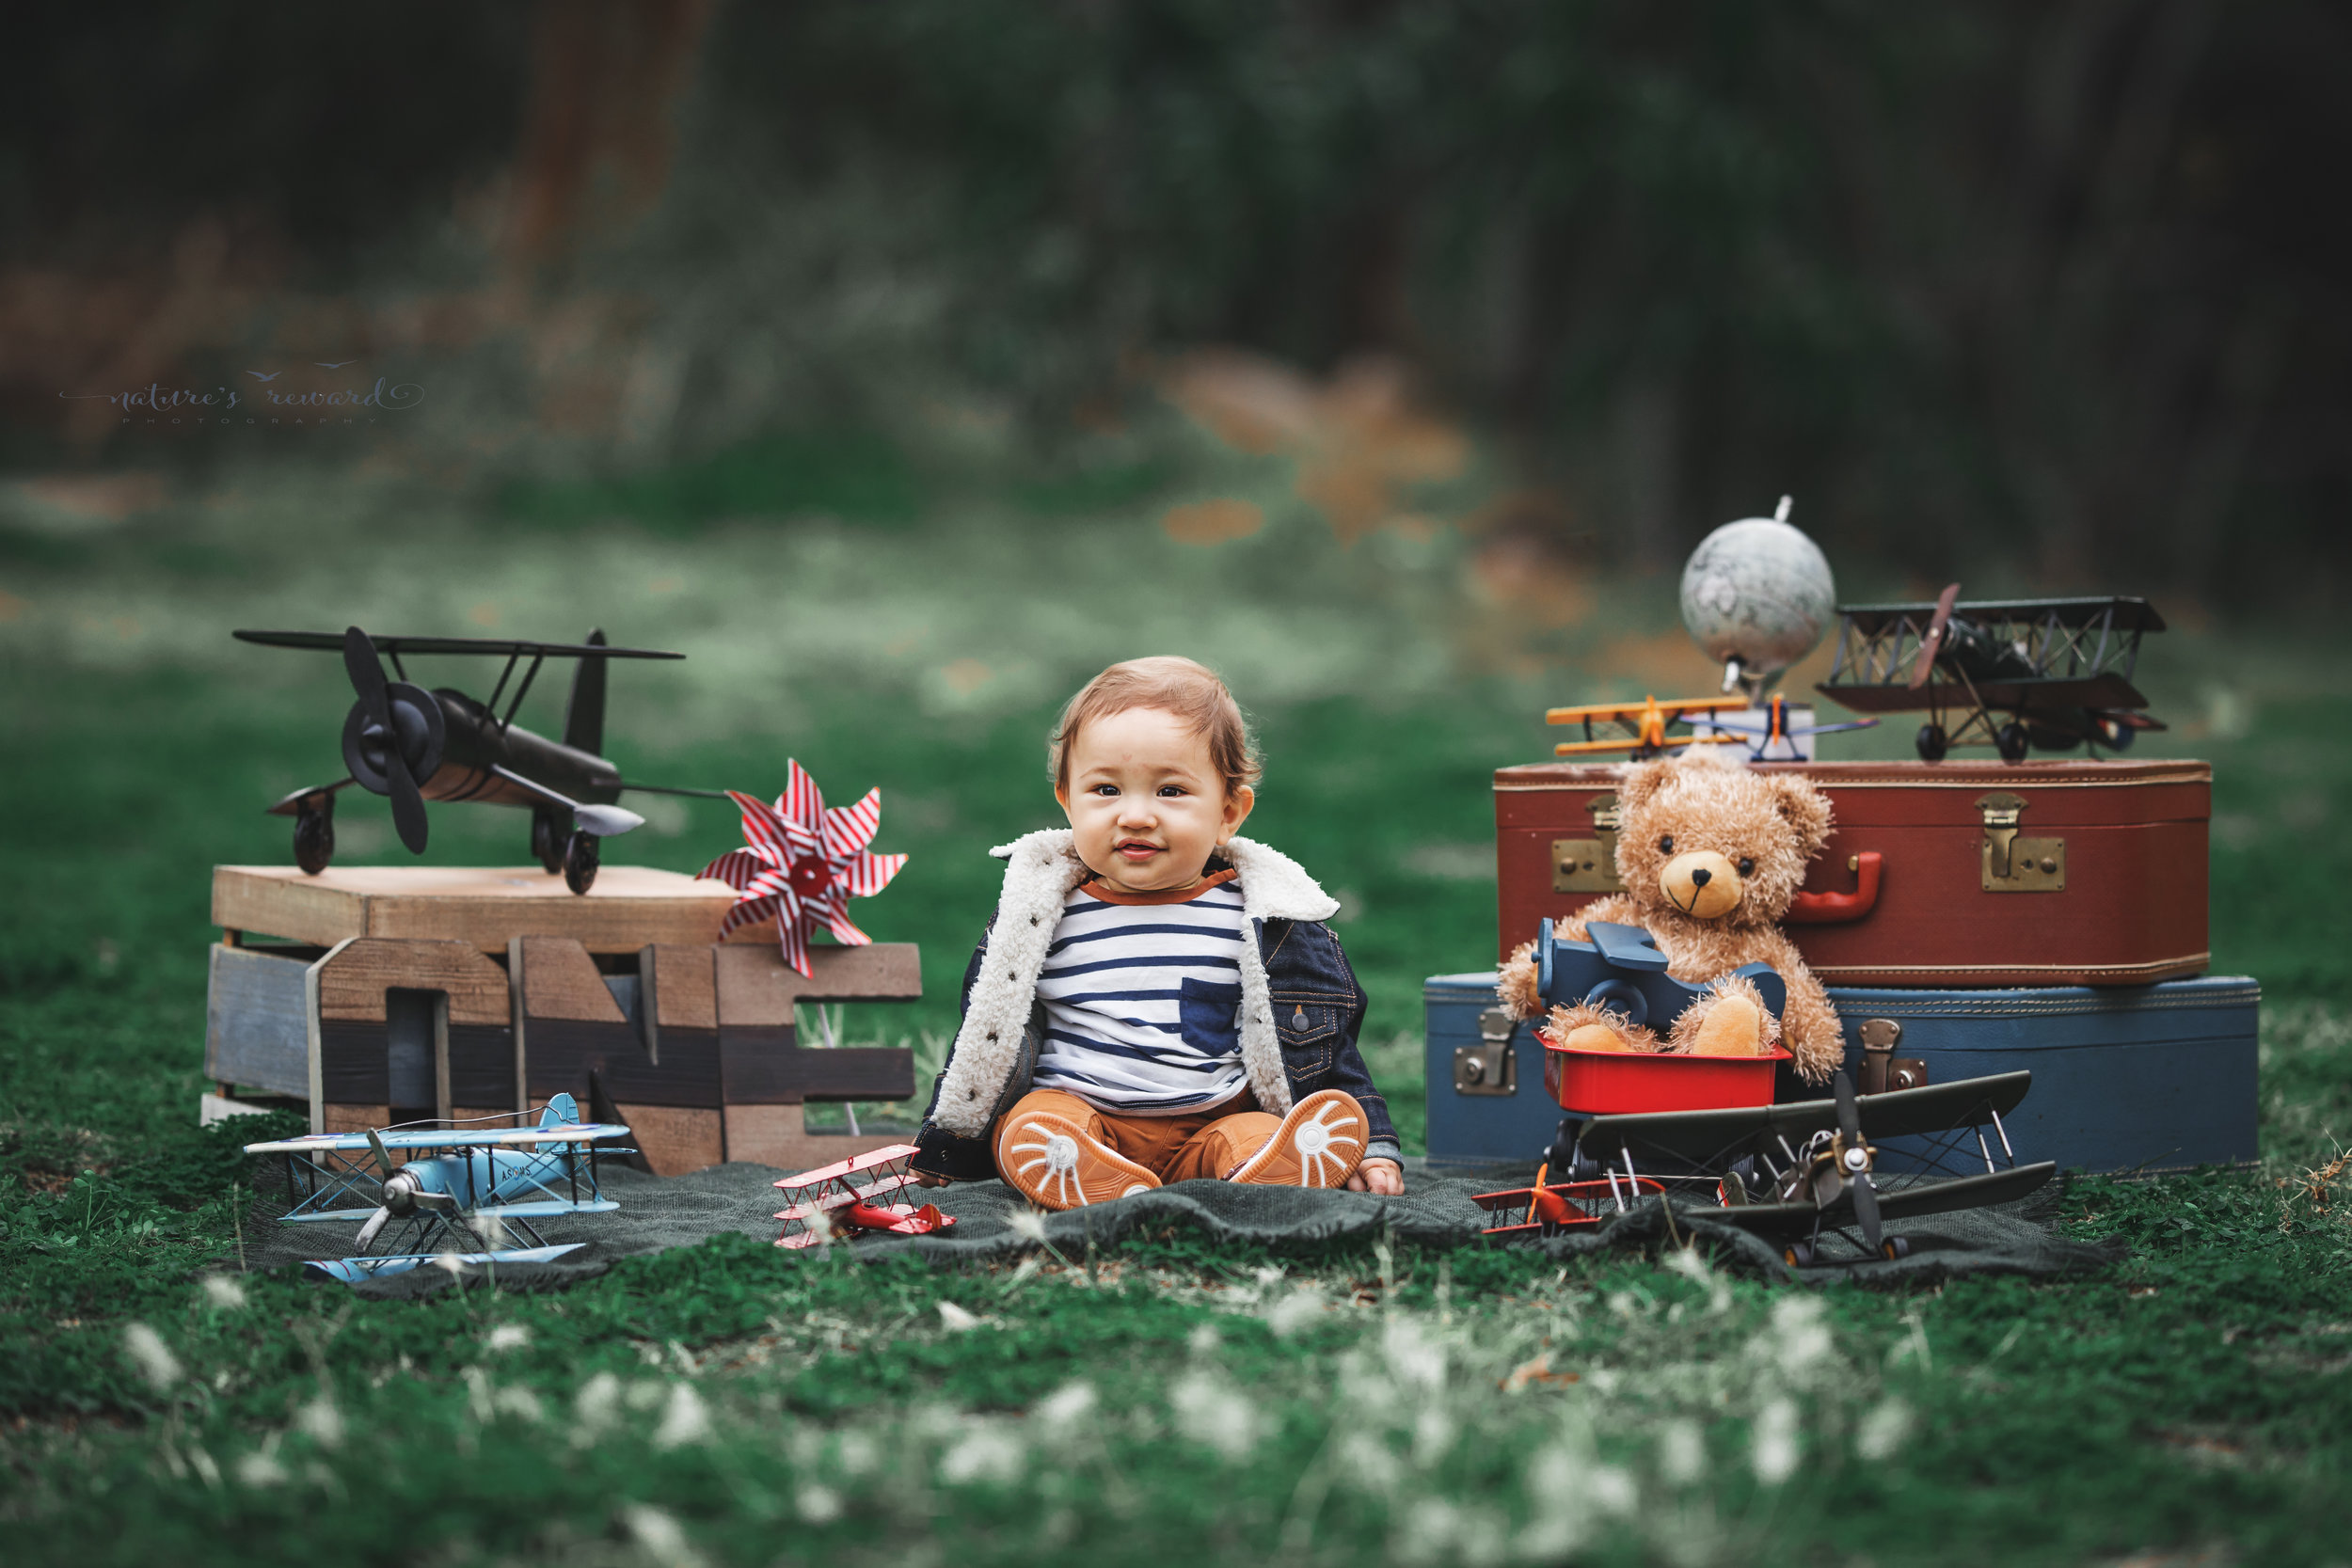 Beautiful baby boy in tans and a white and blue striped shirt and jean jacket in his airplane themed cake smash set in this portrait by Nature's Reward photography